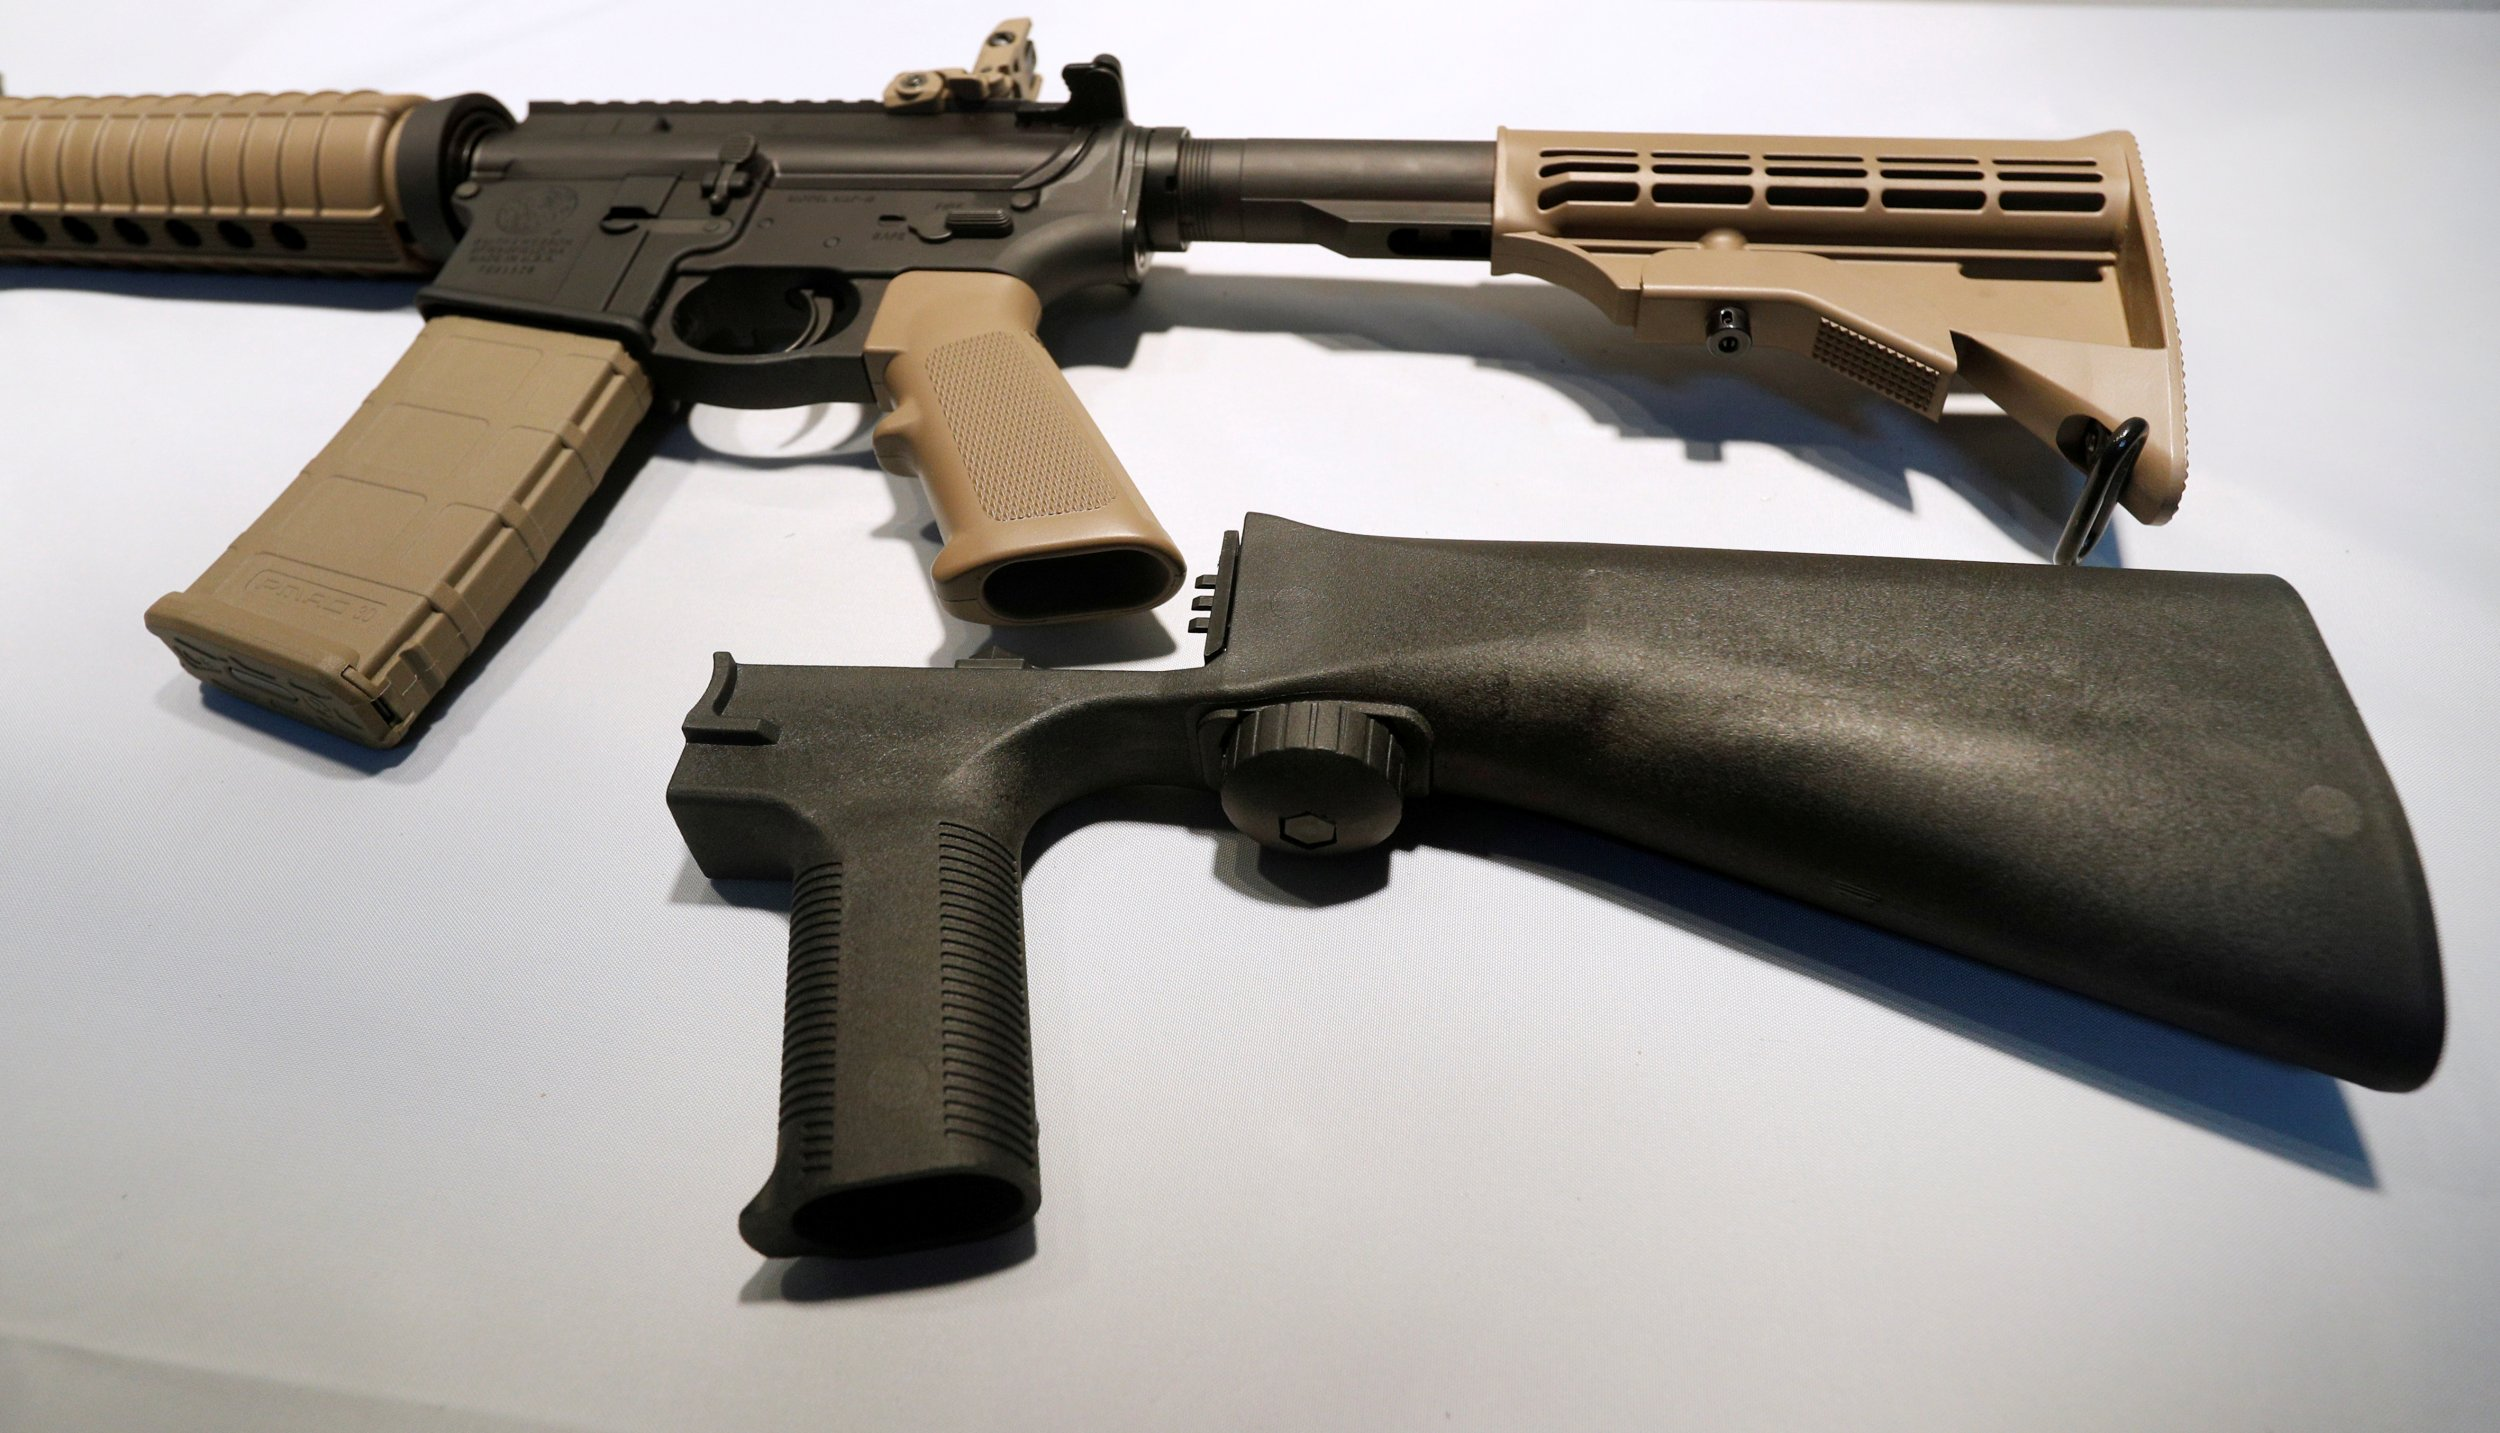 ccdec8c21fc35 Bump Stock Review After Vegas Shooting Falls to Agency That Might ...